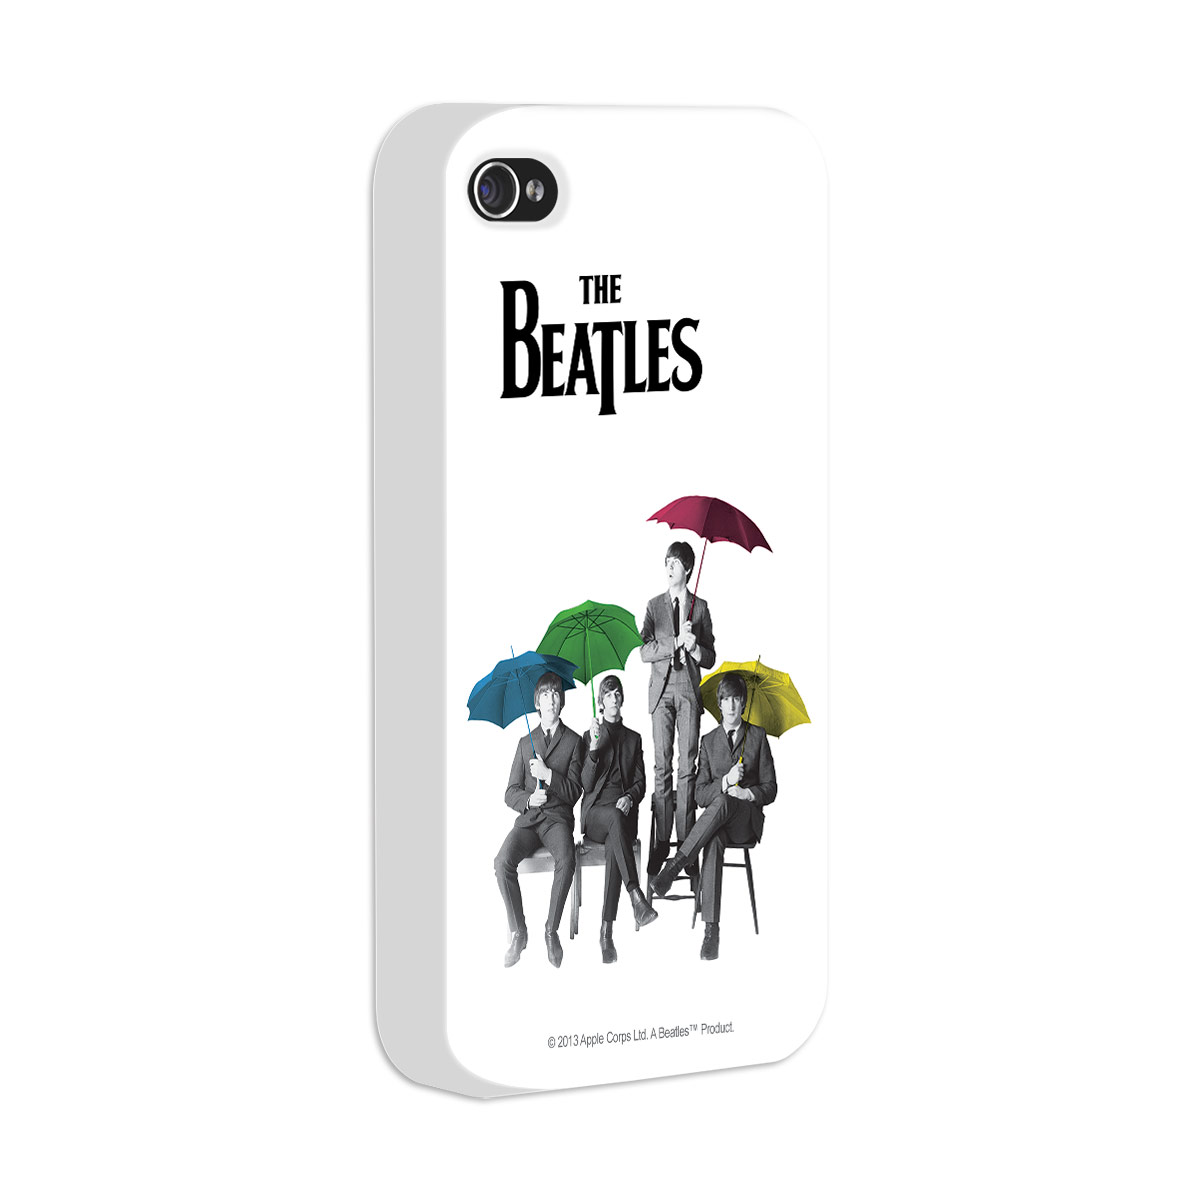 Capa de iPhone 4/4S The Beatles Umbrella Colors